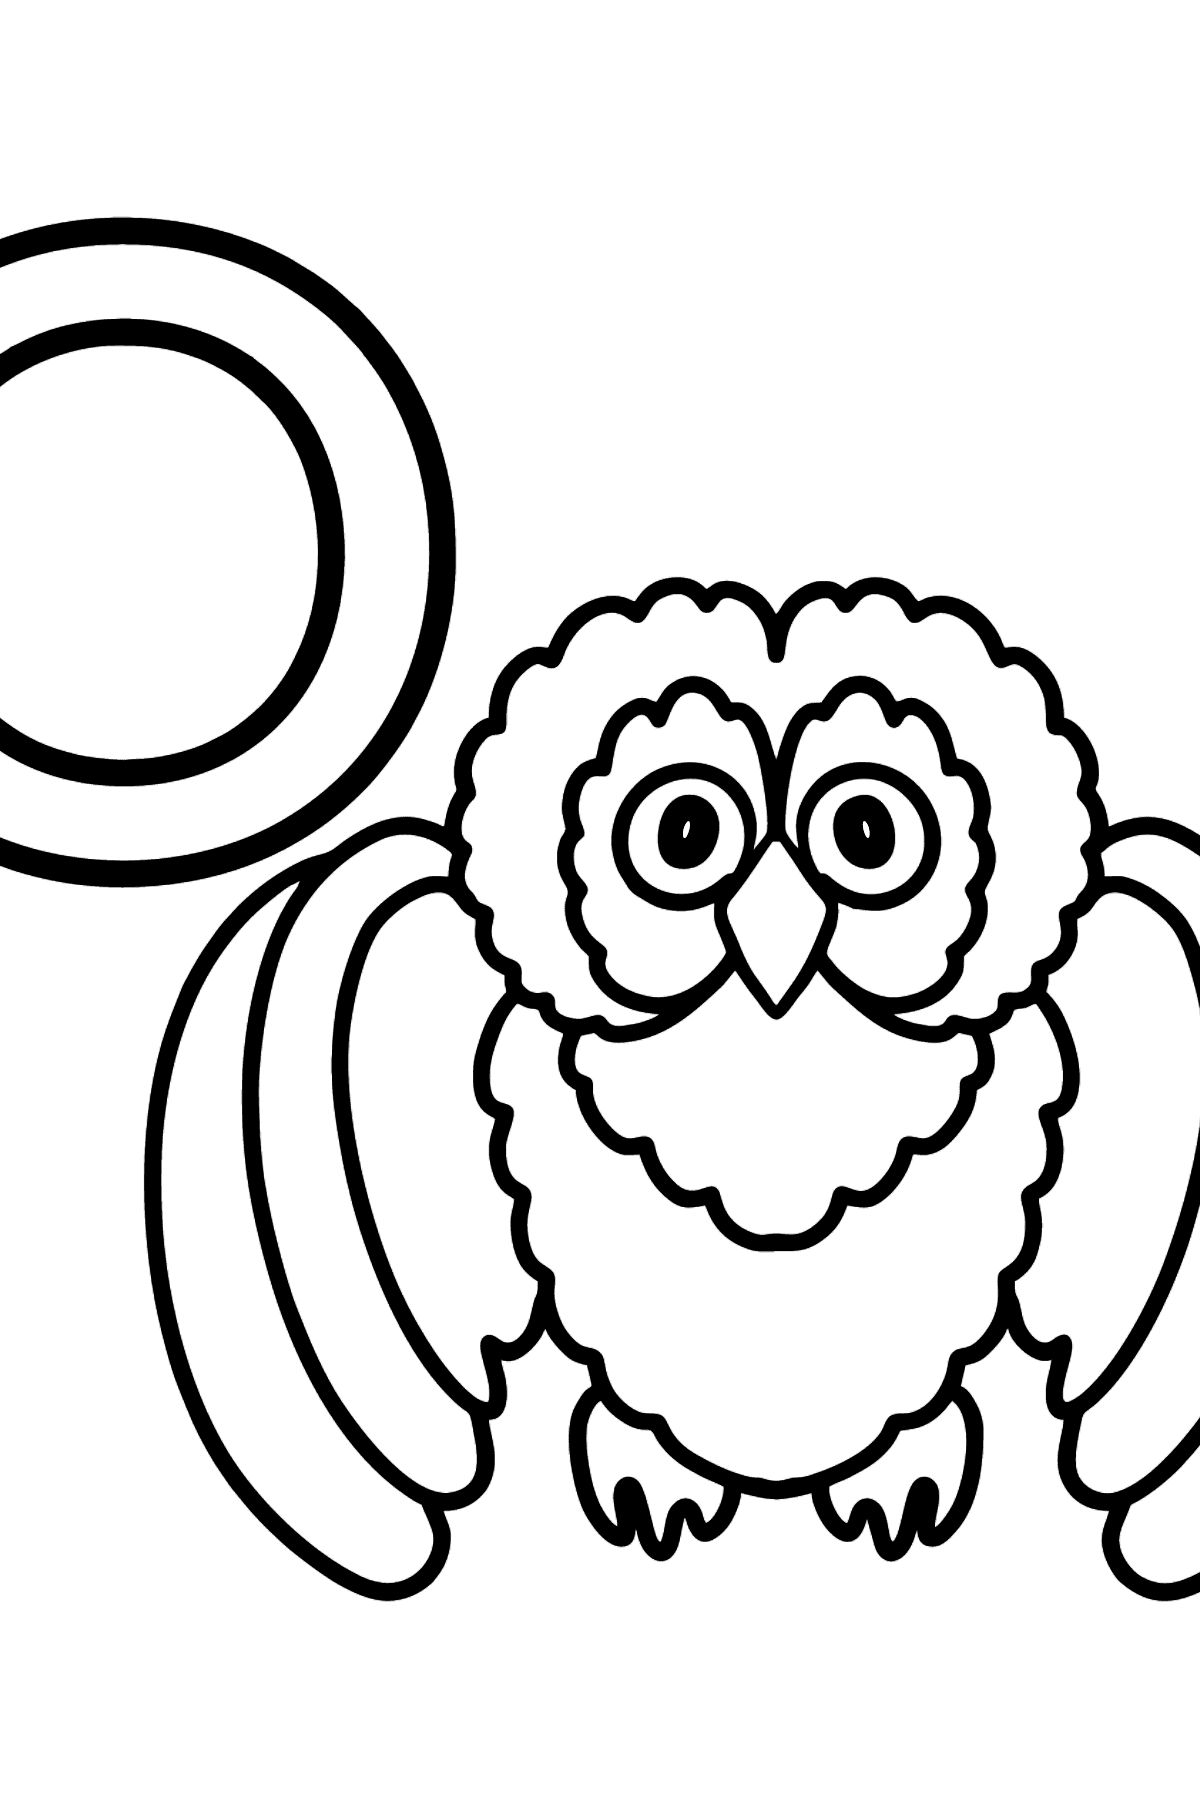 English Letter O coloring pages - OWL - Coloring Pages for Kids